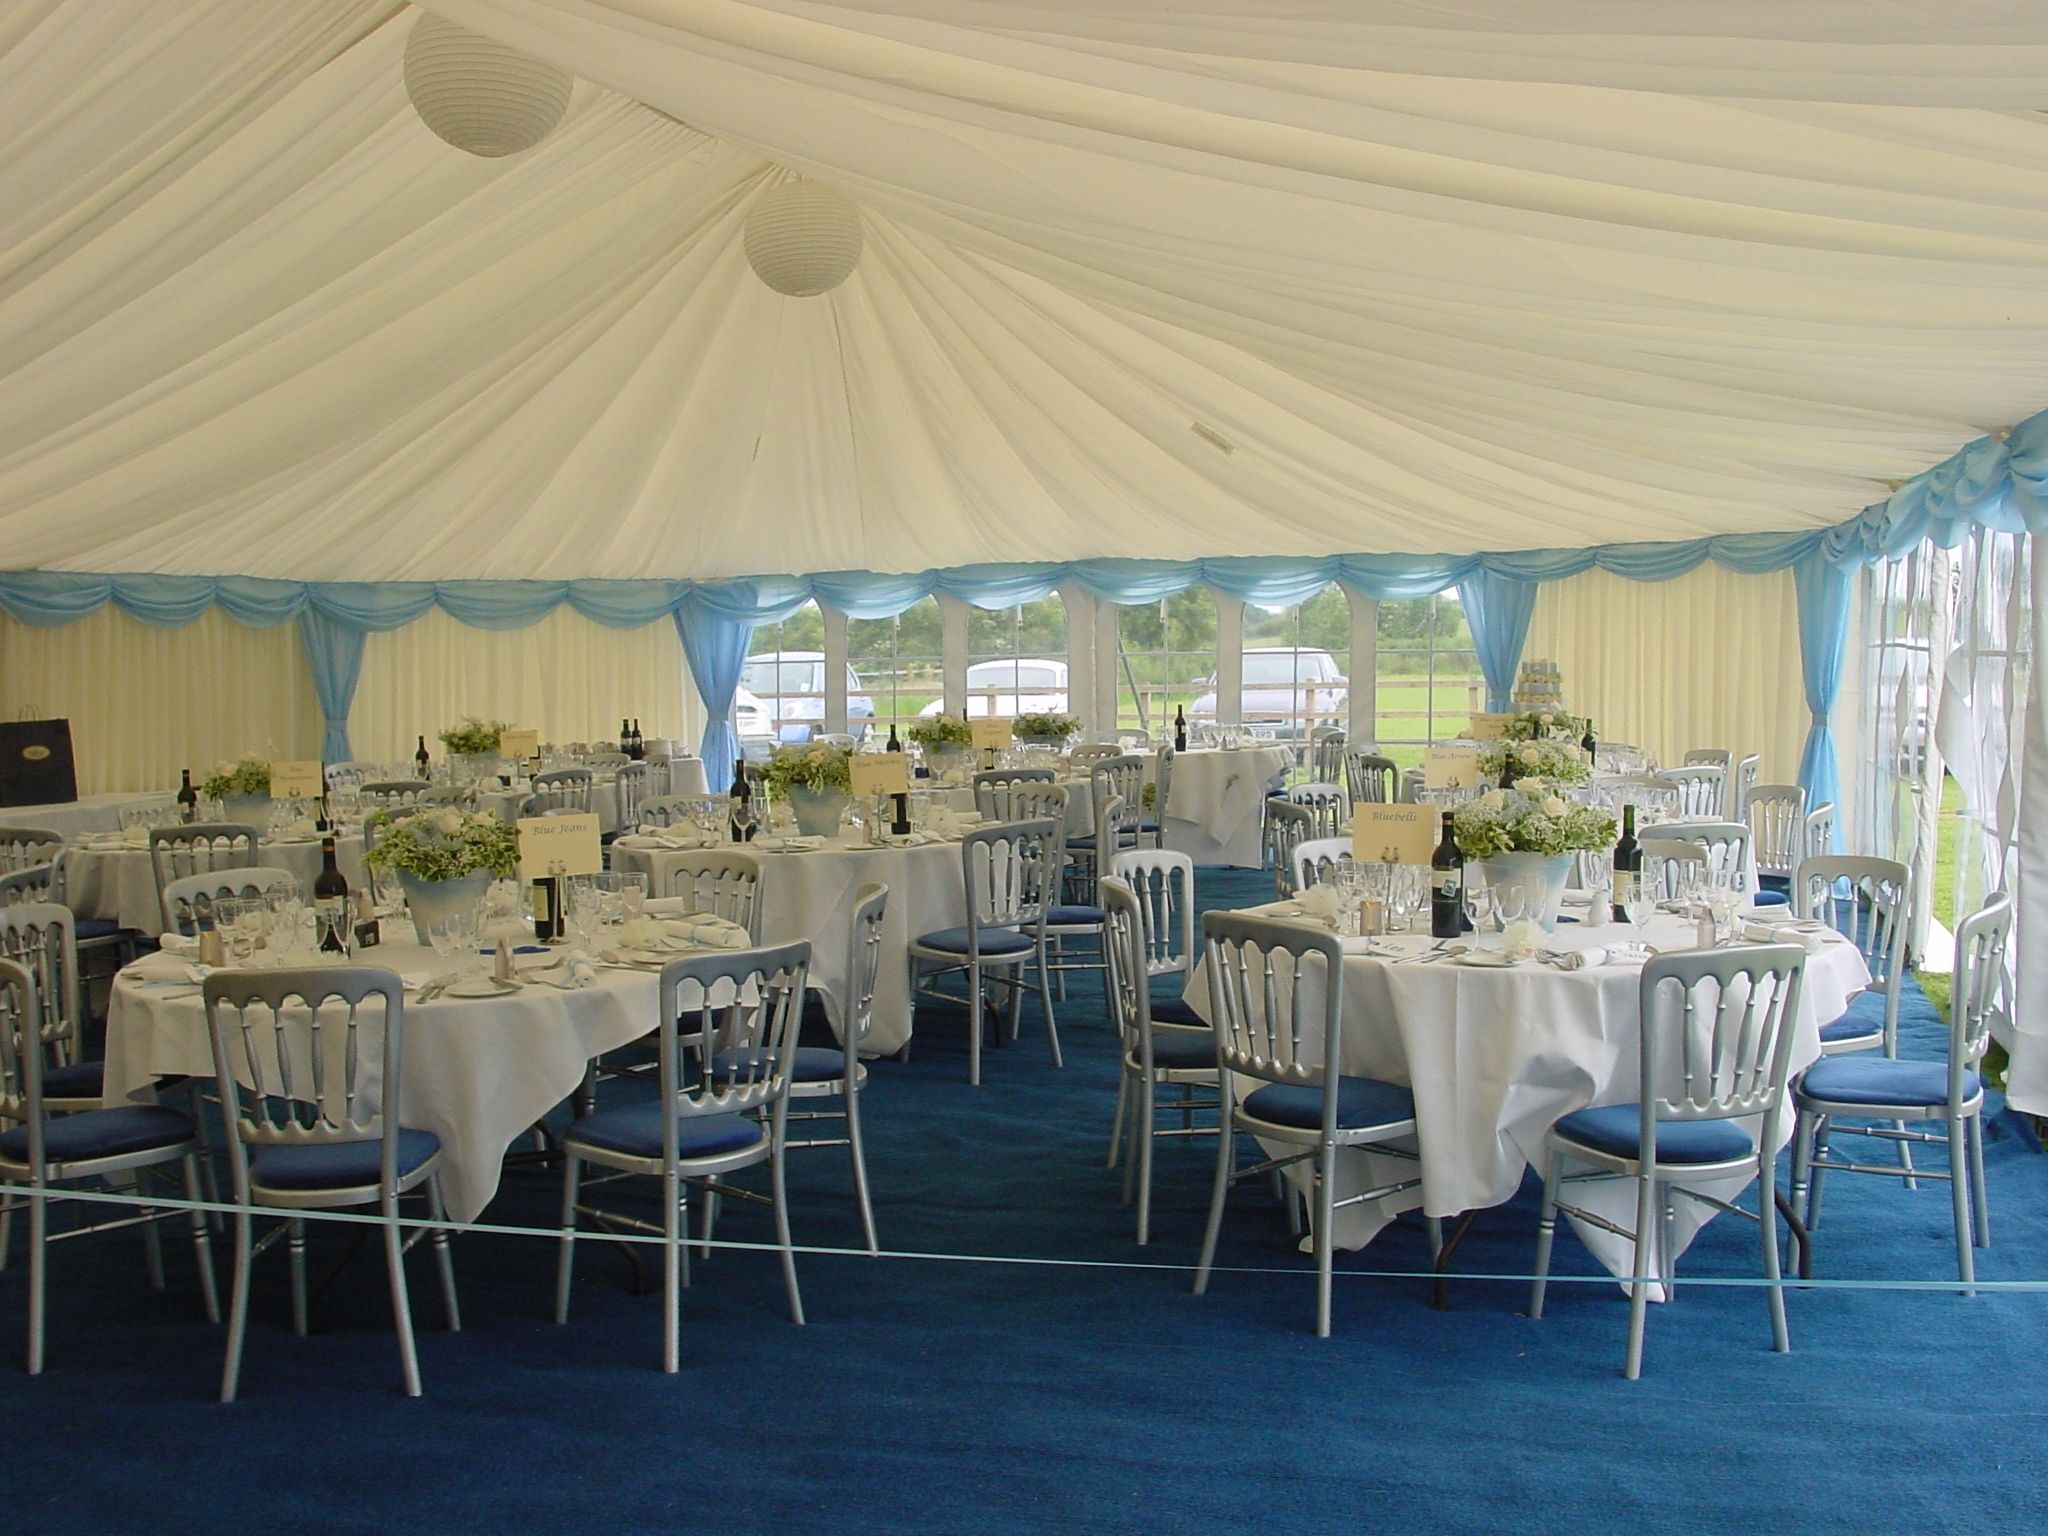 Sky Blue Trim And Blue Carpet Look Clean And Pretty In This Party Marquee Partymarquee Bluecarpet Marquee Hire Marquee Blue Carpet